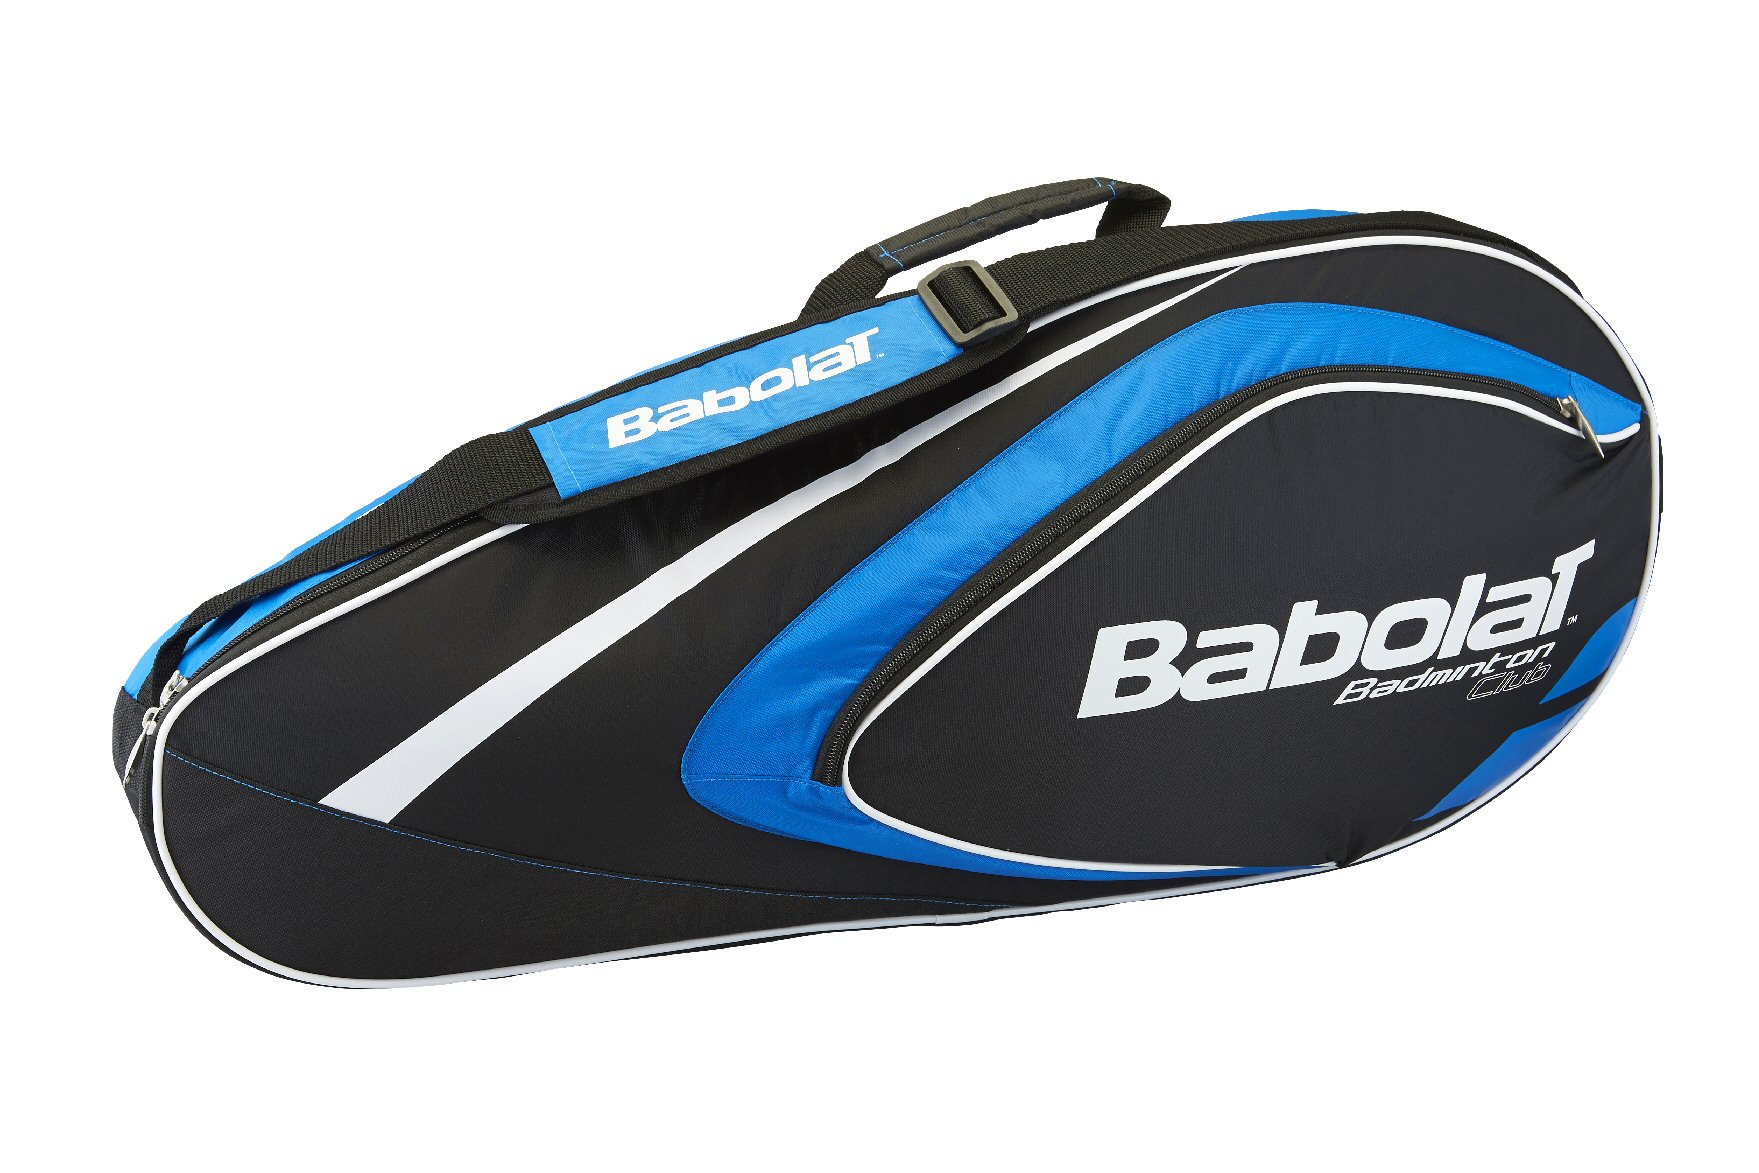 Babolat Badminton Club Line Racket Holder X4 Blue 2016